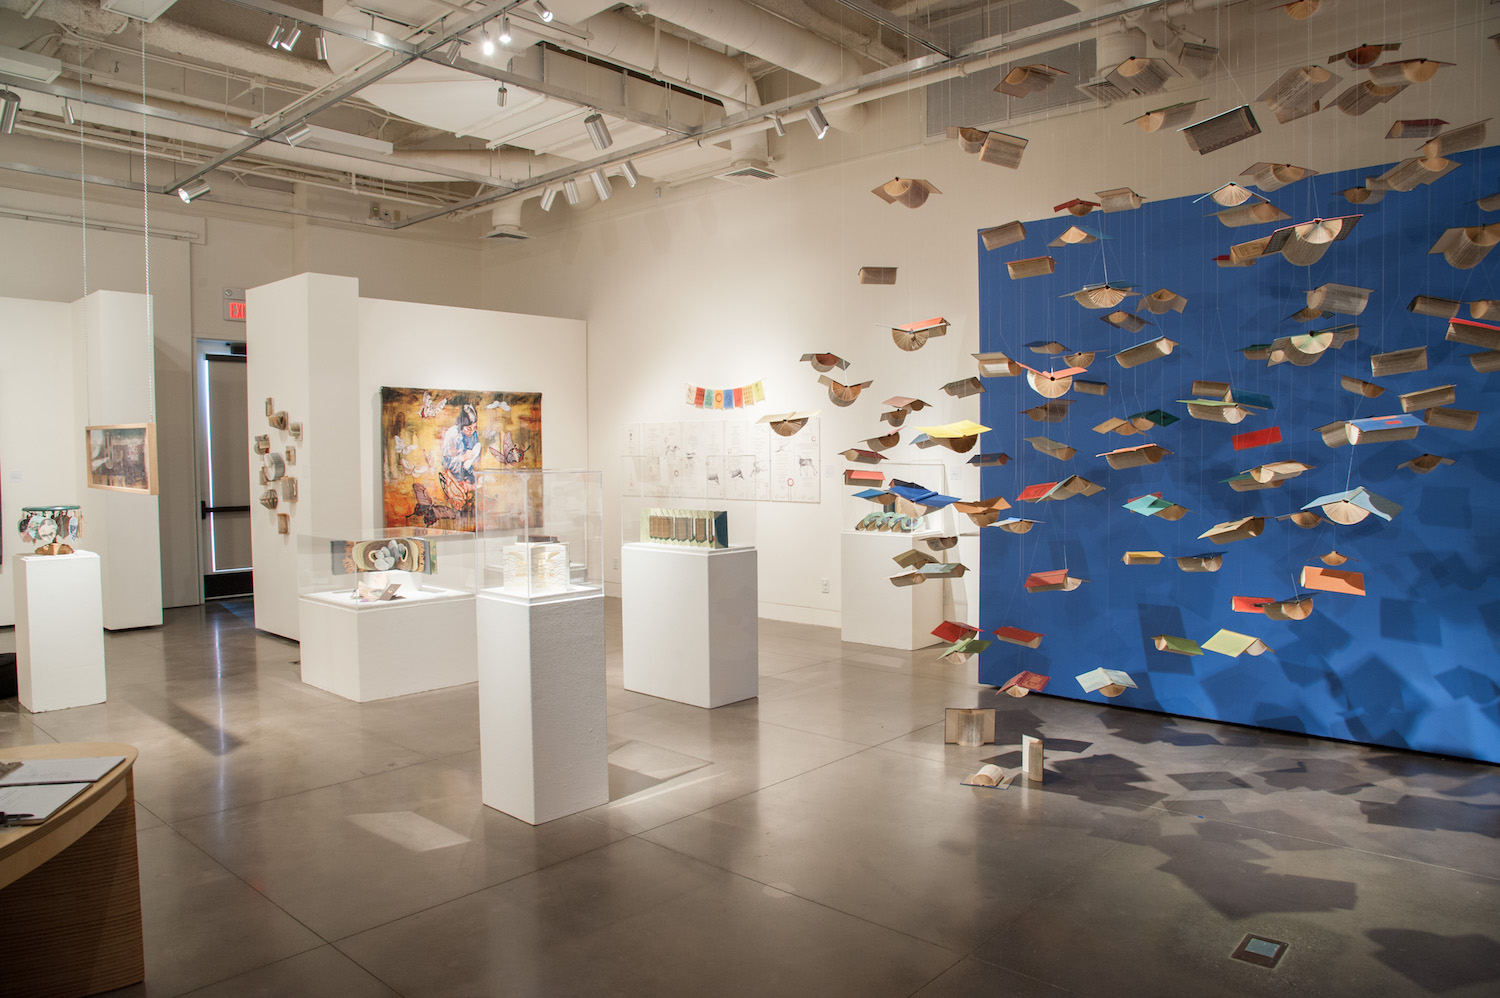 art pieces on display in the gallery